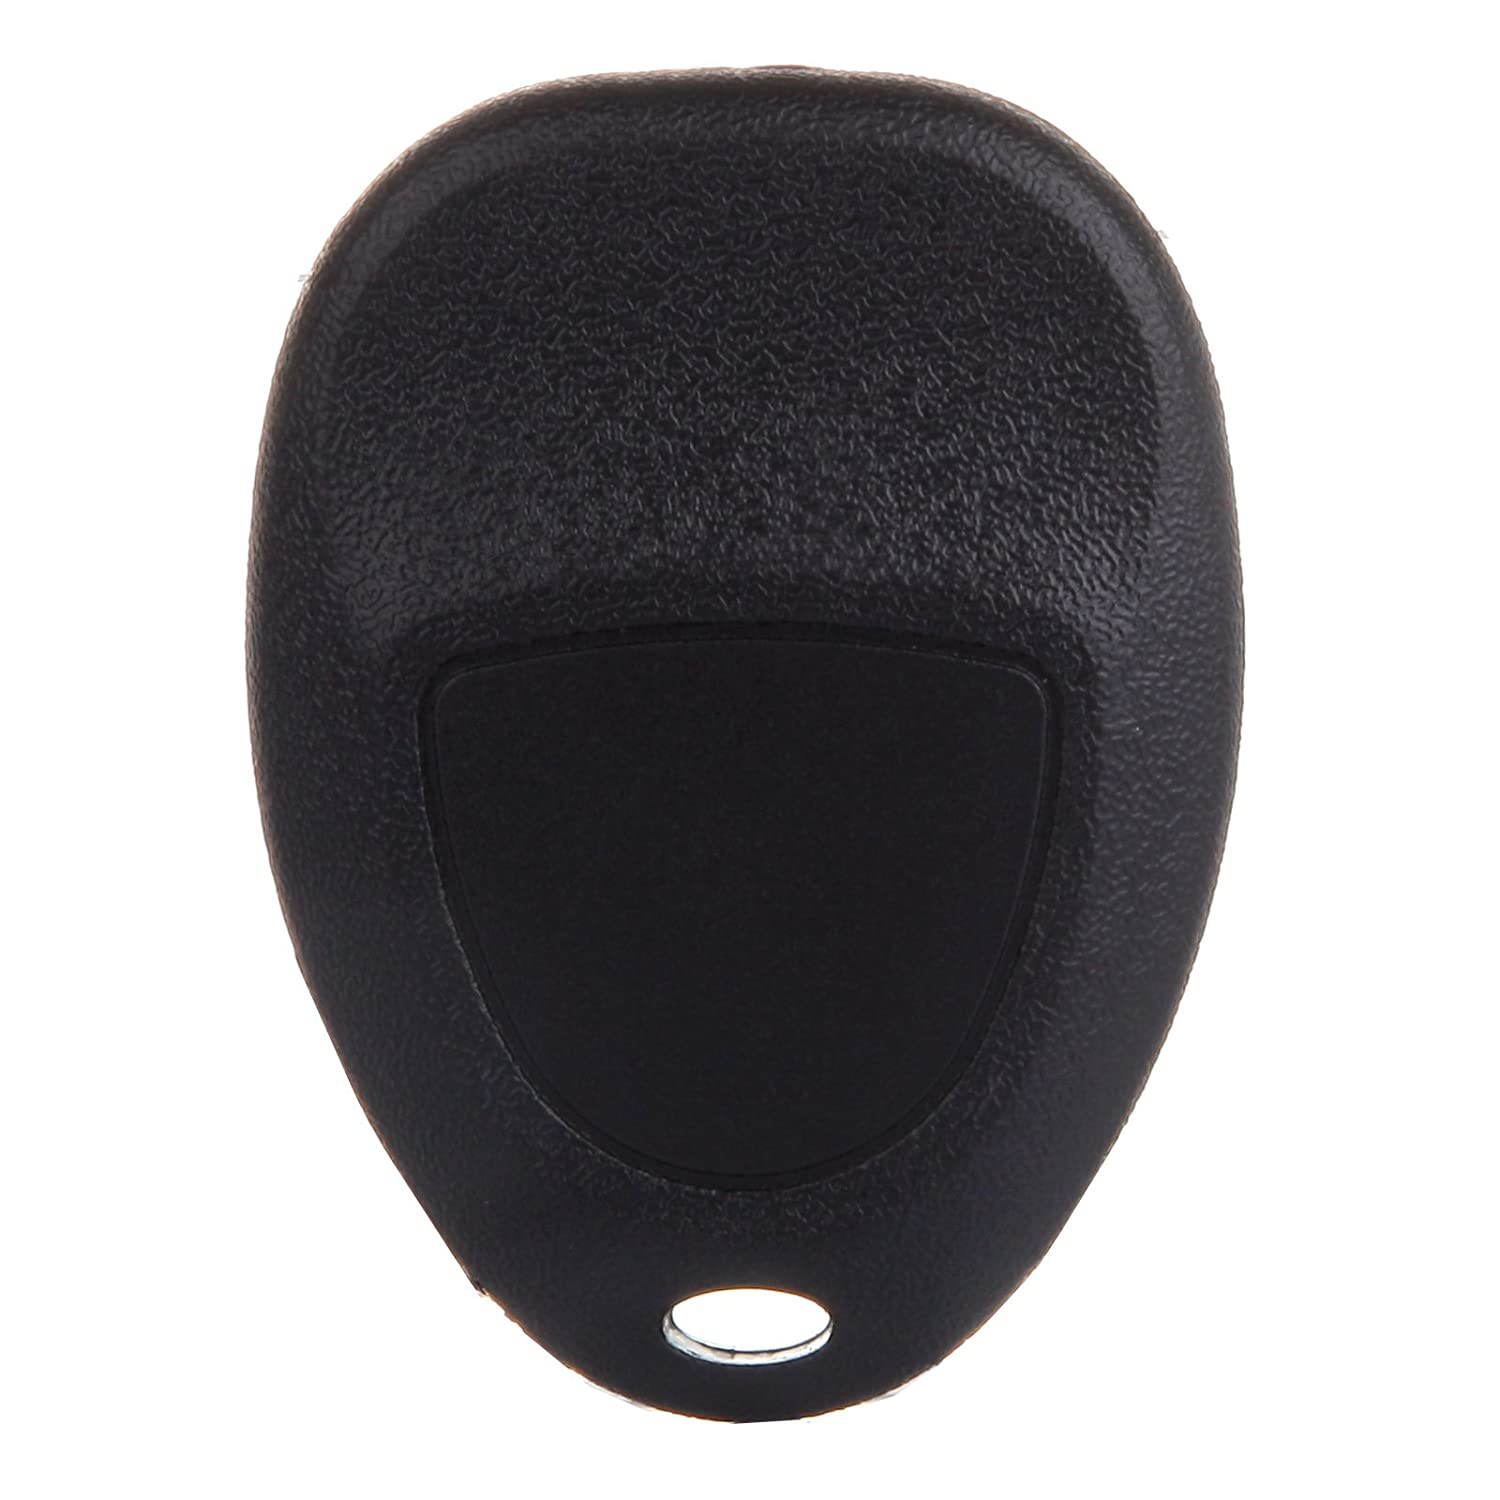 OCPTY 2X Keyless Entry Remote Control Key Fob Transmitter Replacement fit for Specific Pontiac//Cadillac//Buick//Suzuki//Saturn//Chevrolet//GMC Series M3N5WY8109 OUC60270 OUC60221